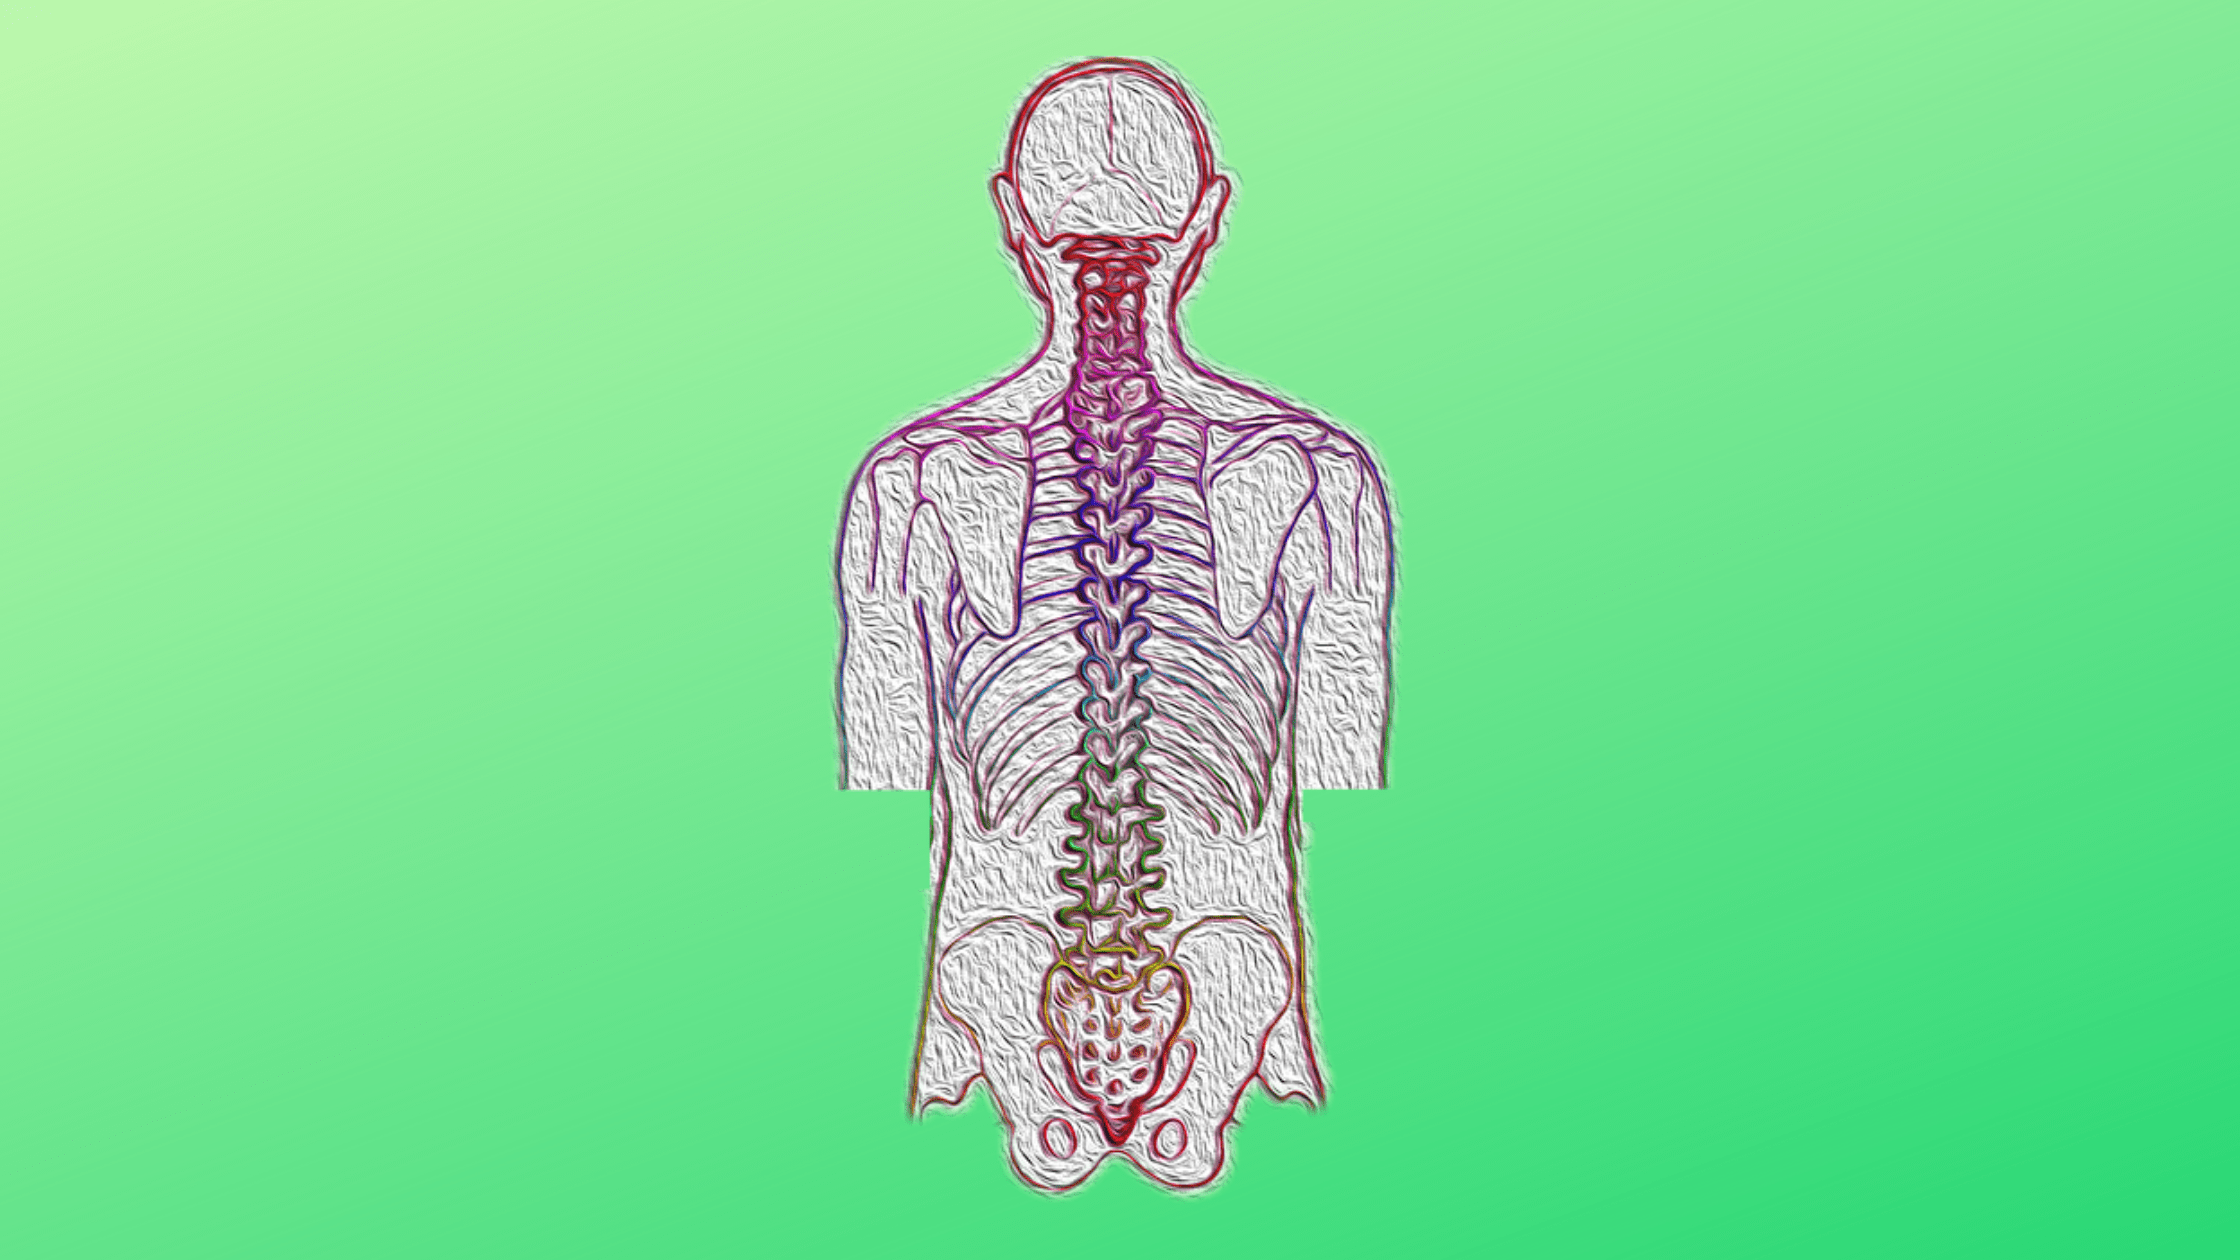 Illustration of human spine on green gradient background.